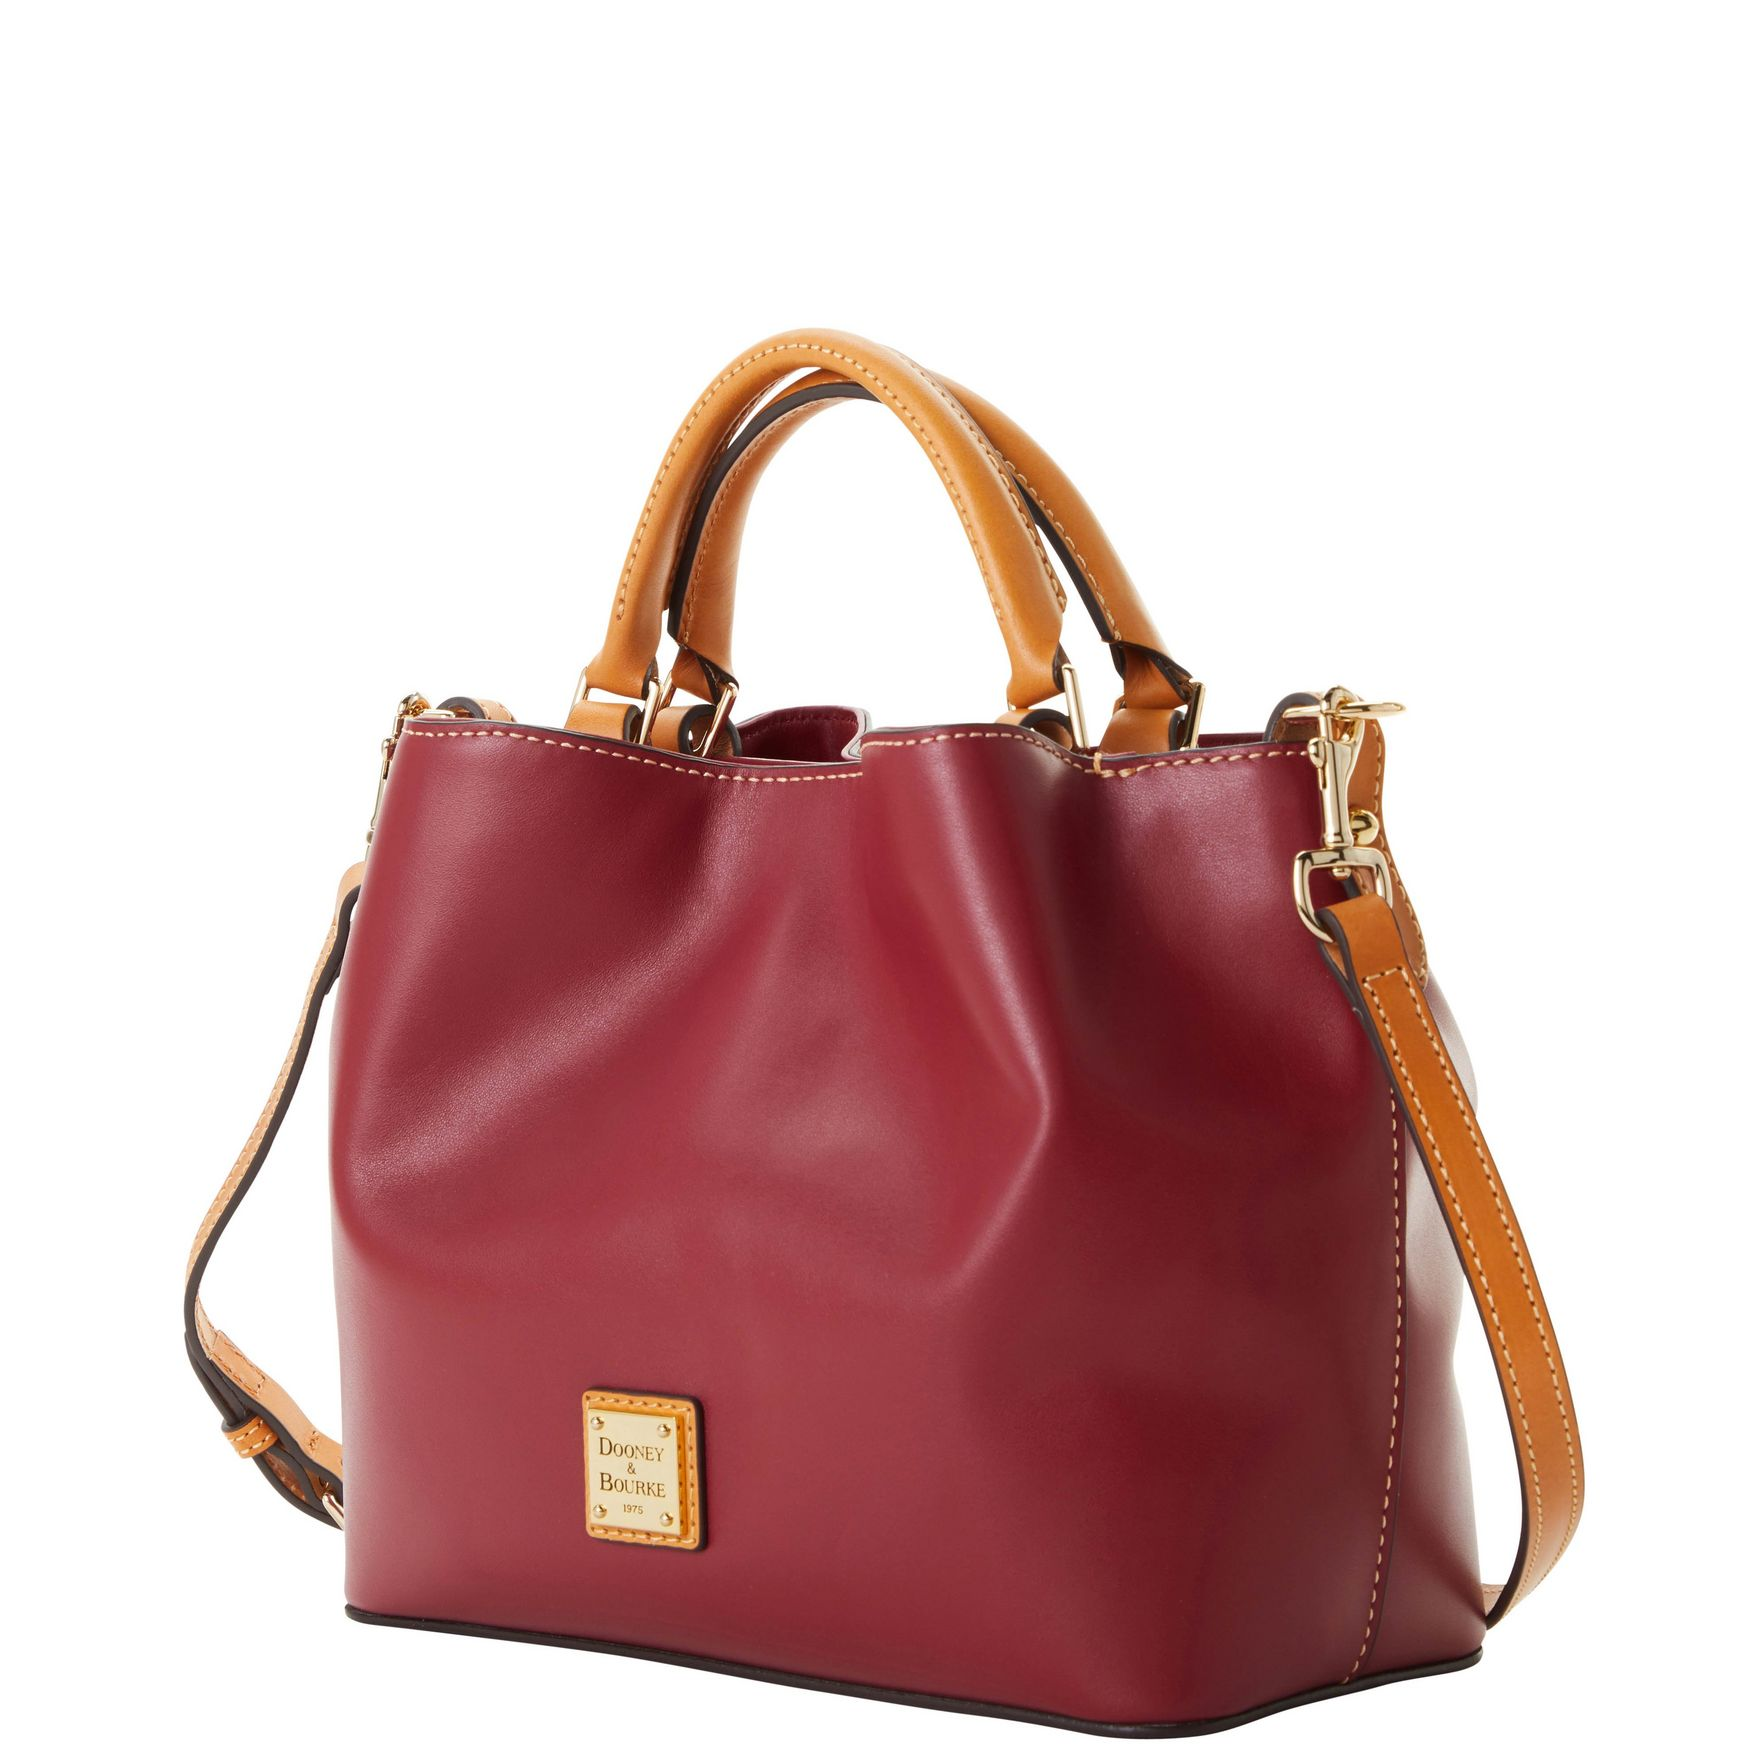 Dooney-amp-Bourke-Wexford-Leather-Small-Brenna thumbnail 37